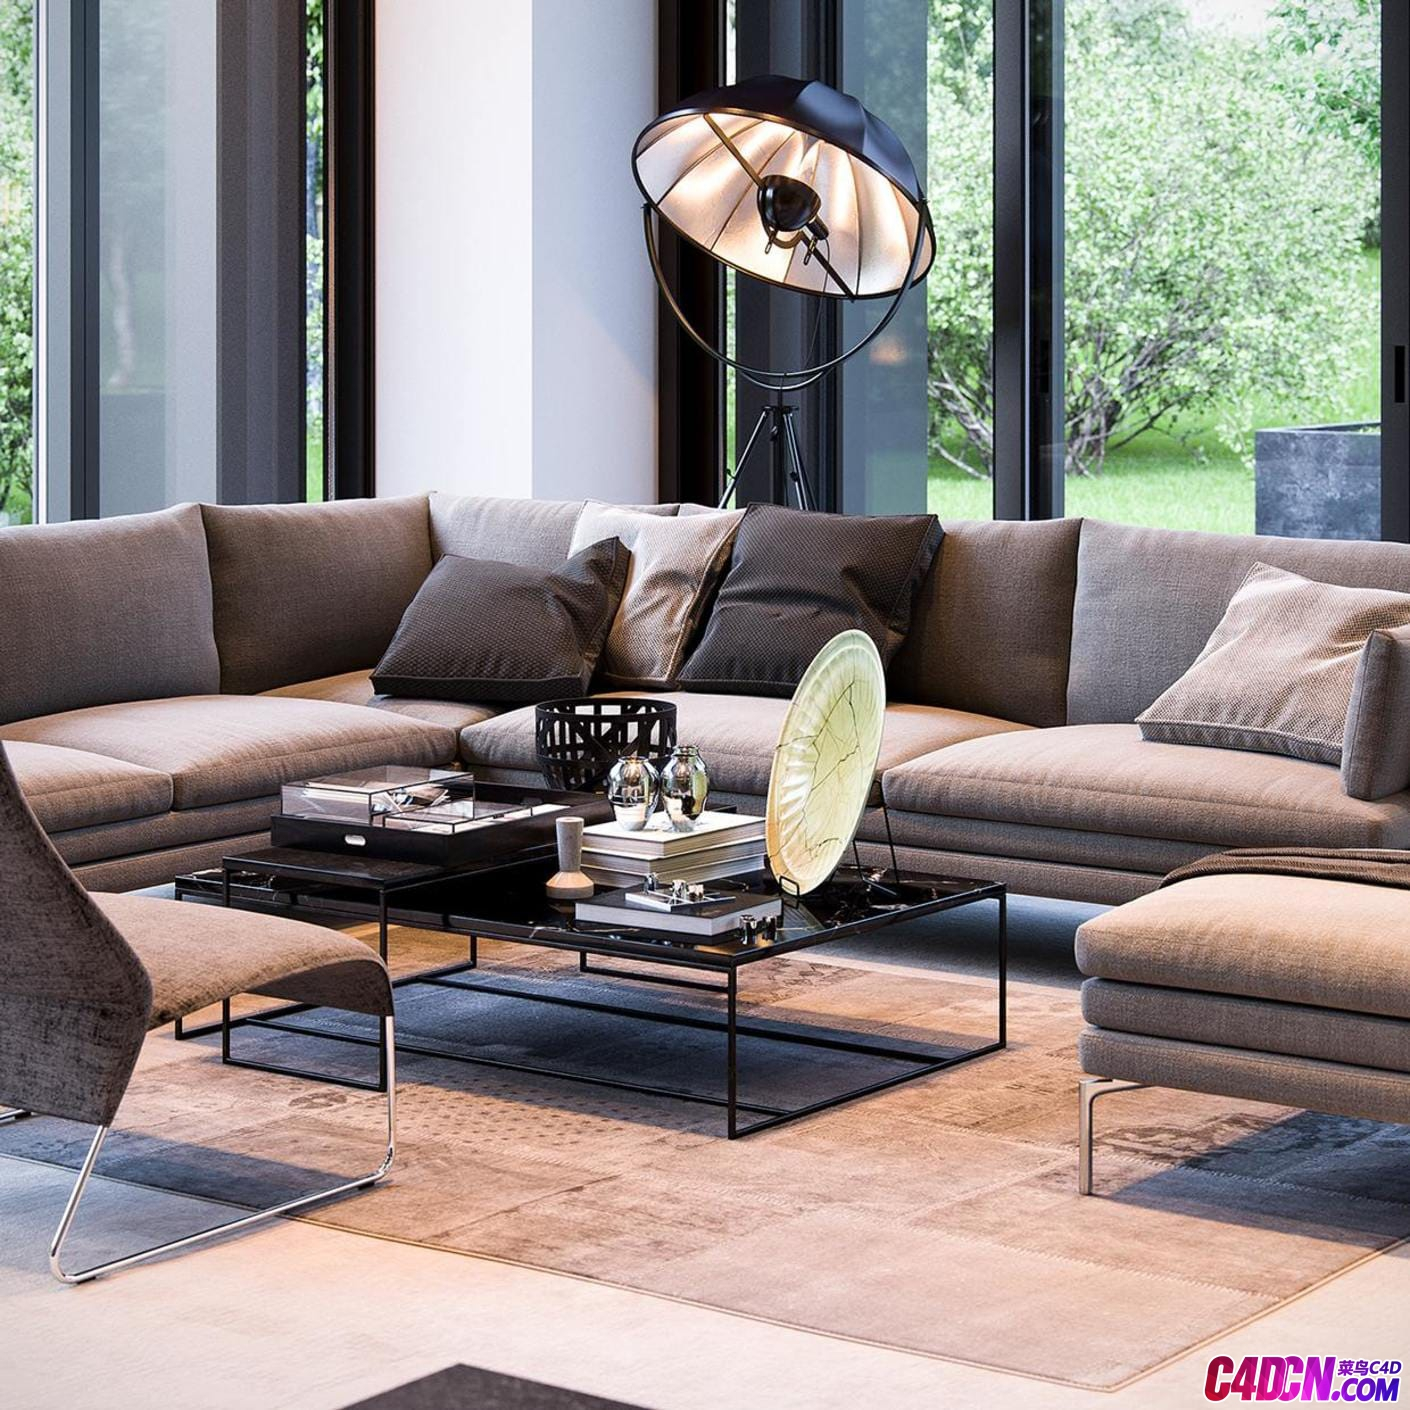 double-aye-living-room-interior-vray-3ds-max-01.jpg